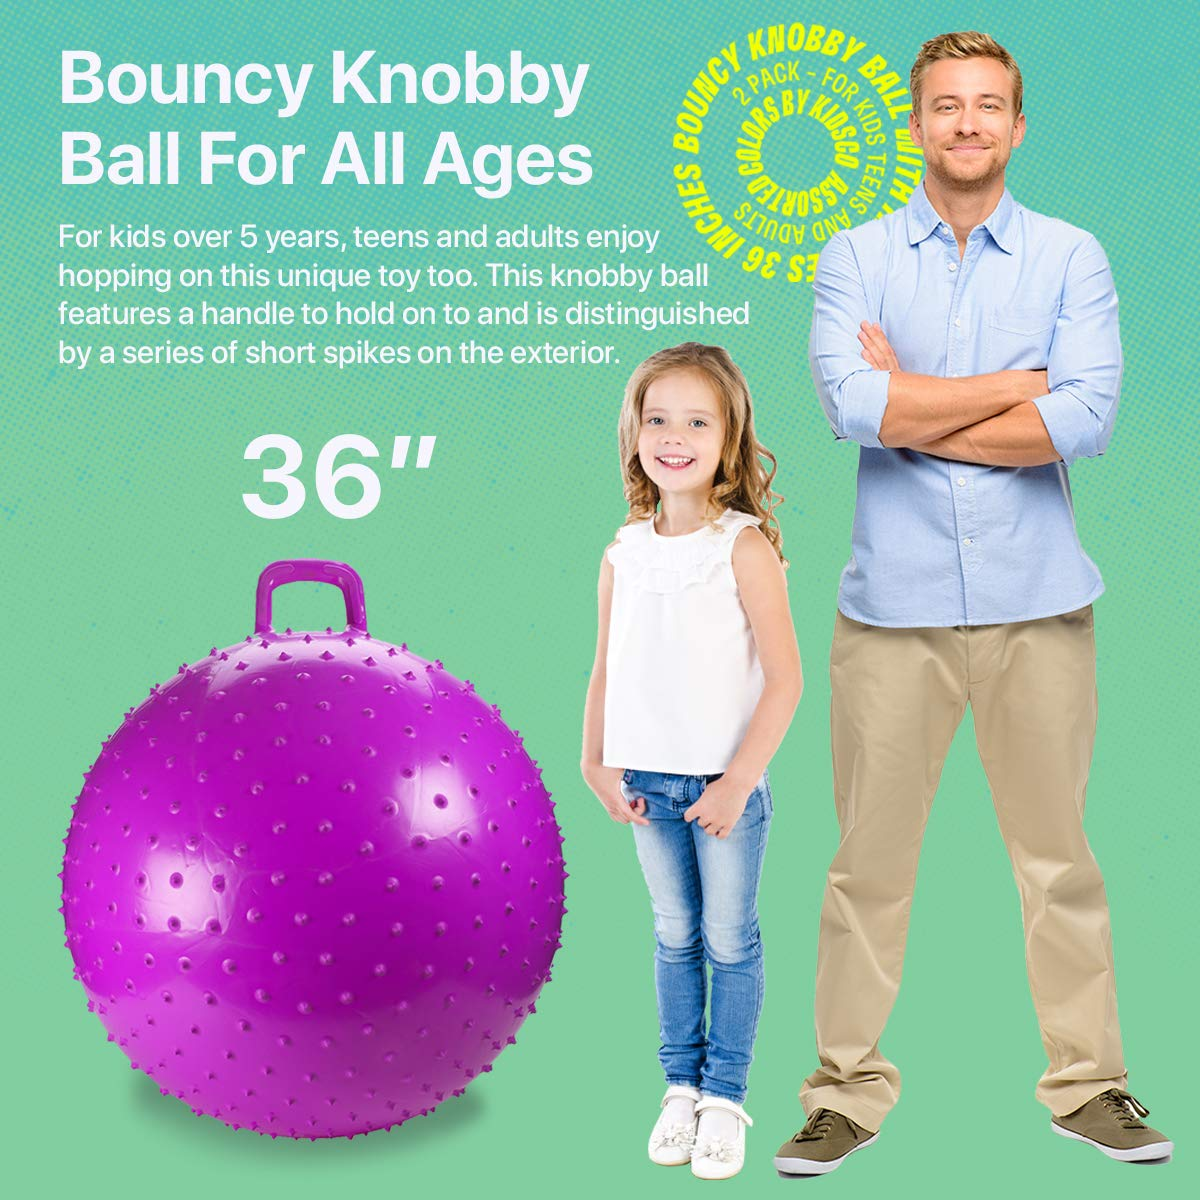 Kicko Bouncy Knobby Ball with Handles 36 Inches - 2 Pack - for Teens and Adults - Assorted Colors, Colors May Vary, Sold Deflated by Kicko (Image #2)